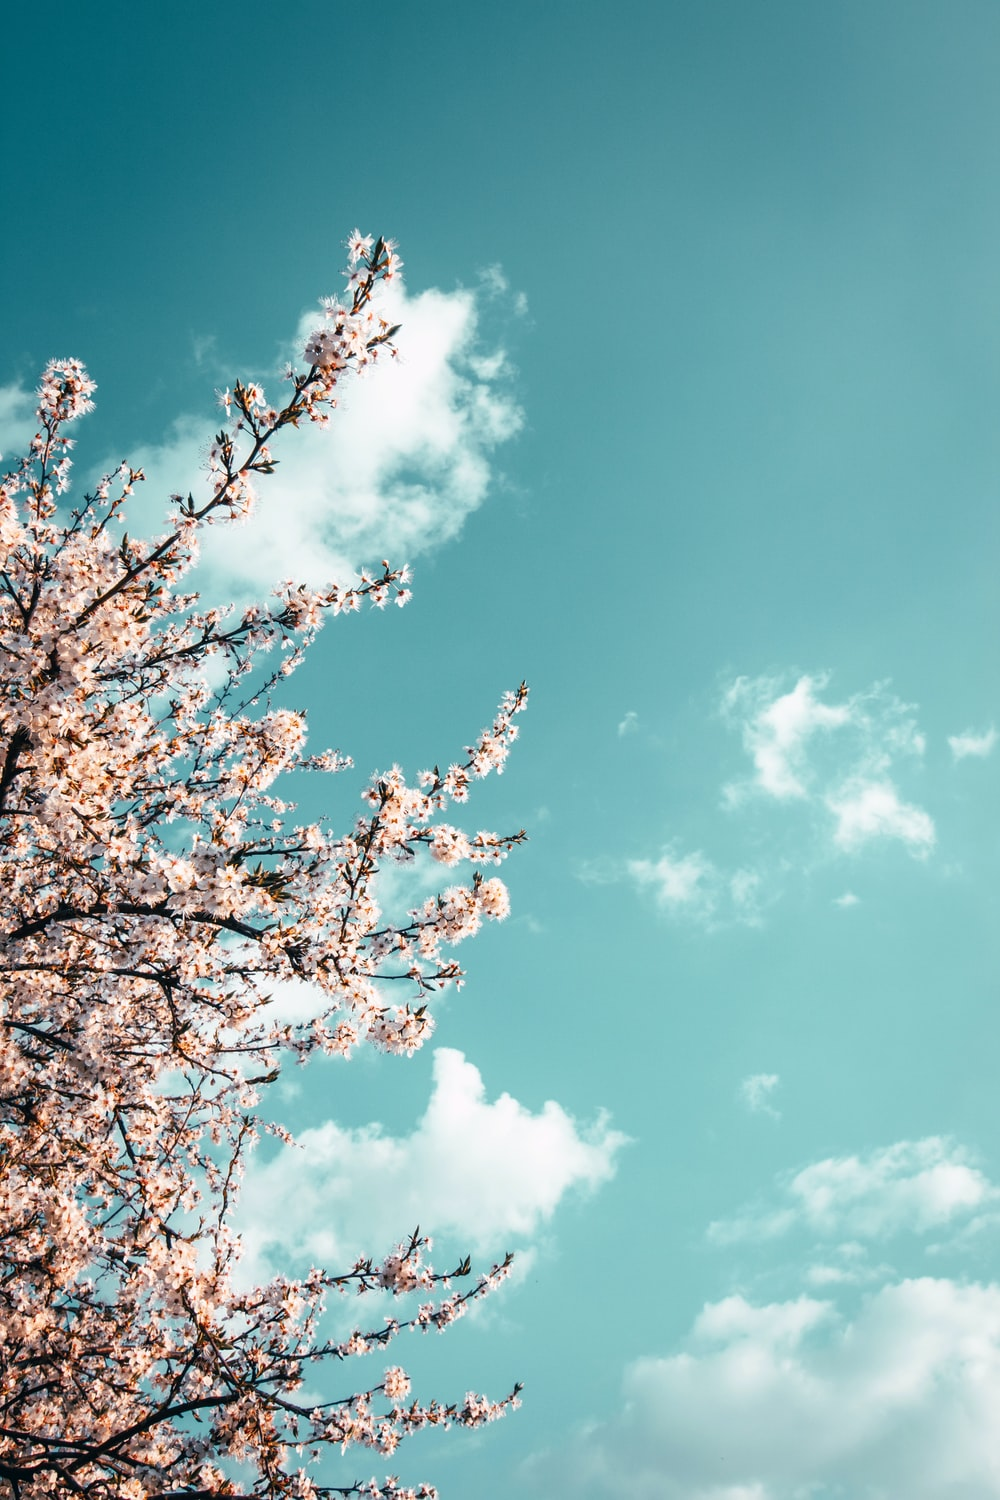 pink cherry blossom tree under blue sky and white clouds during daytime